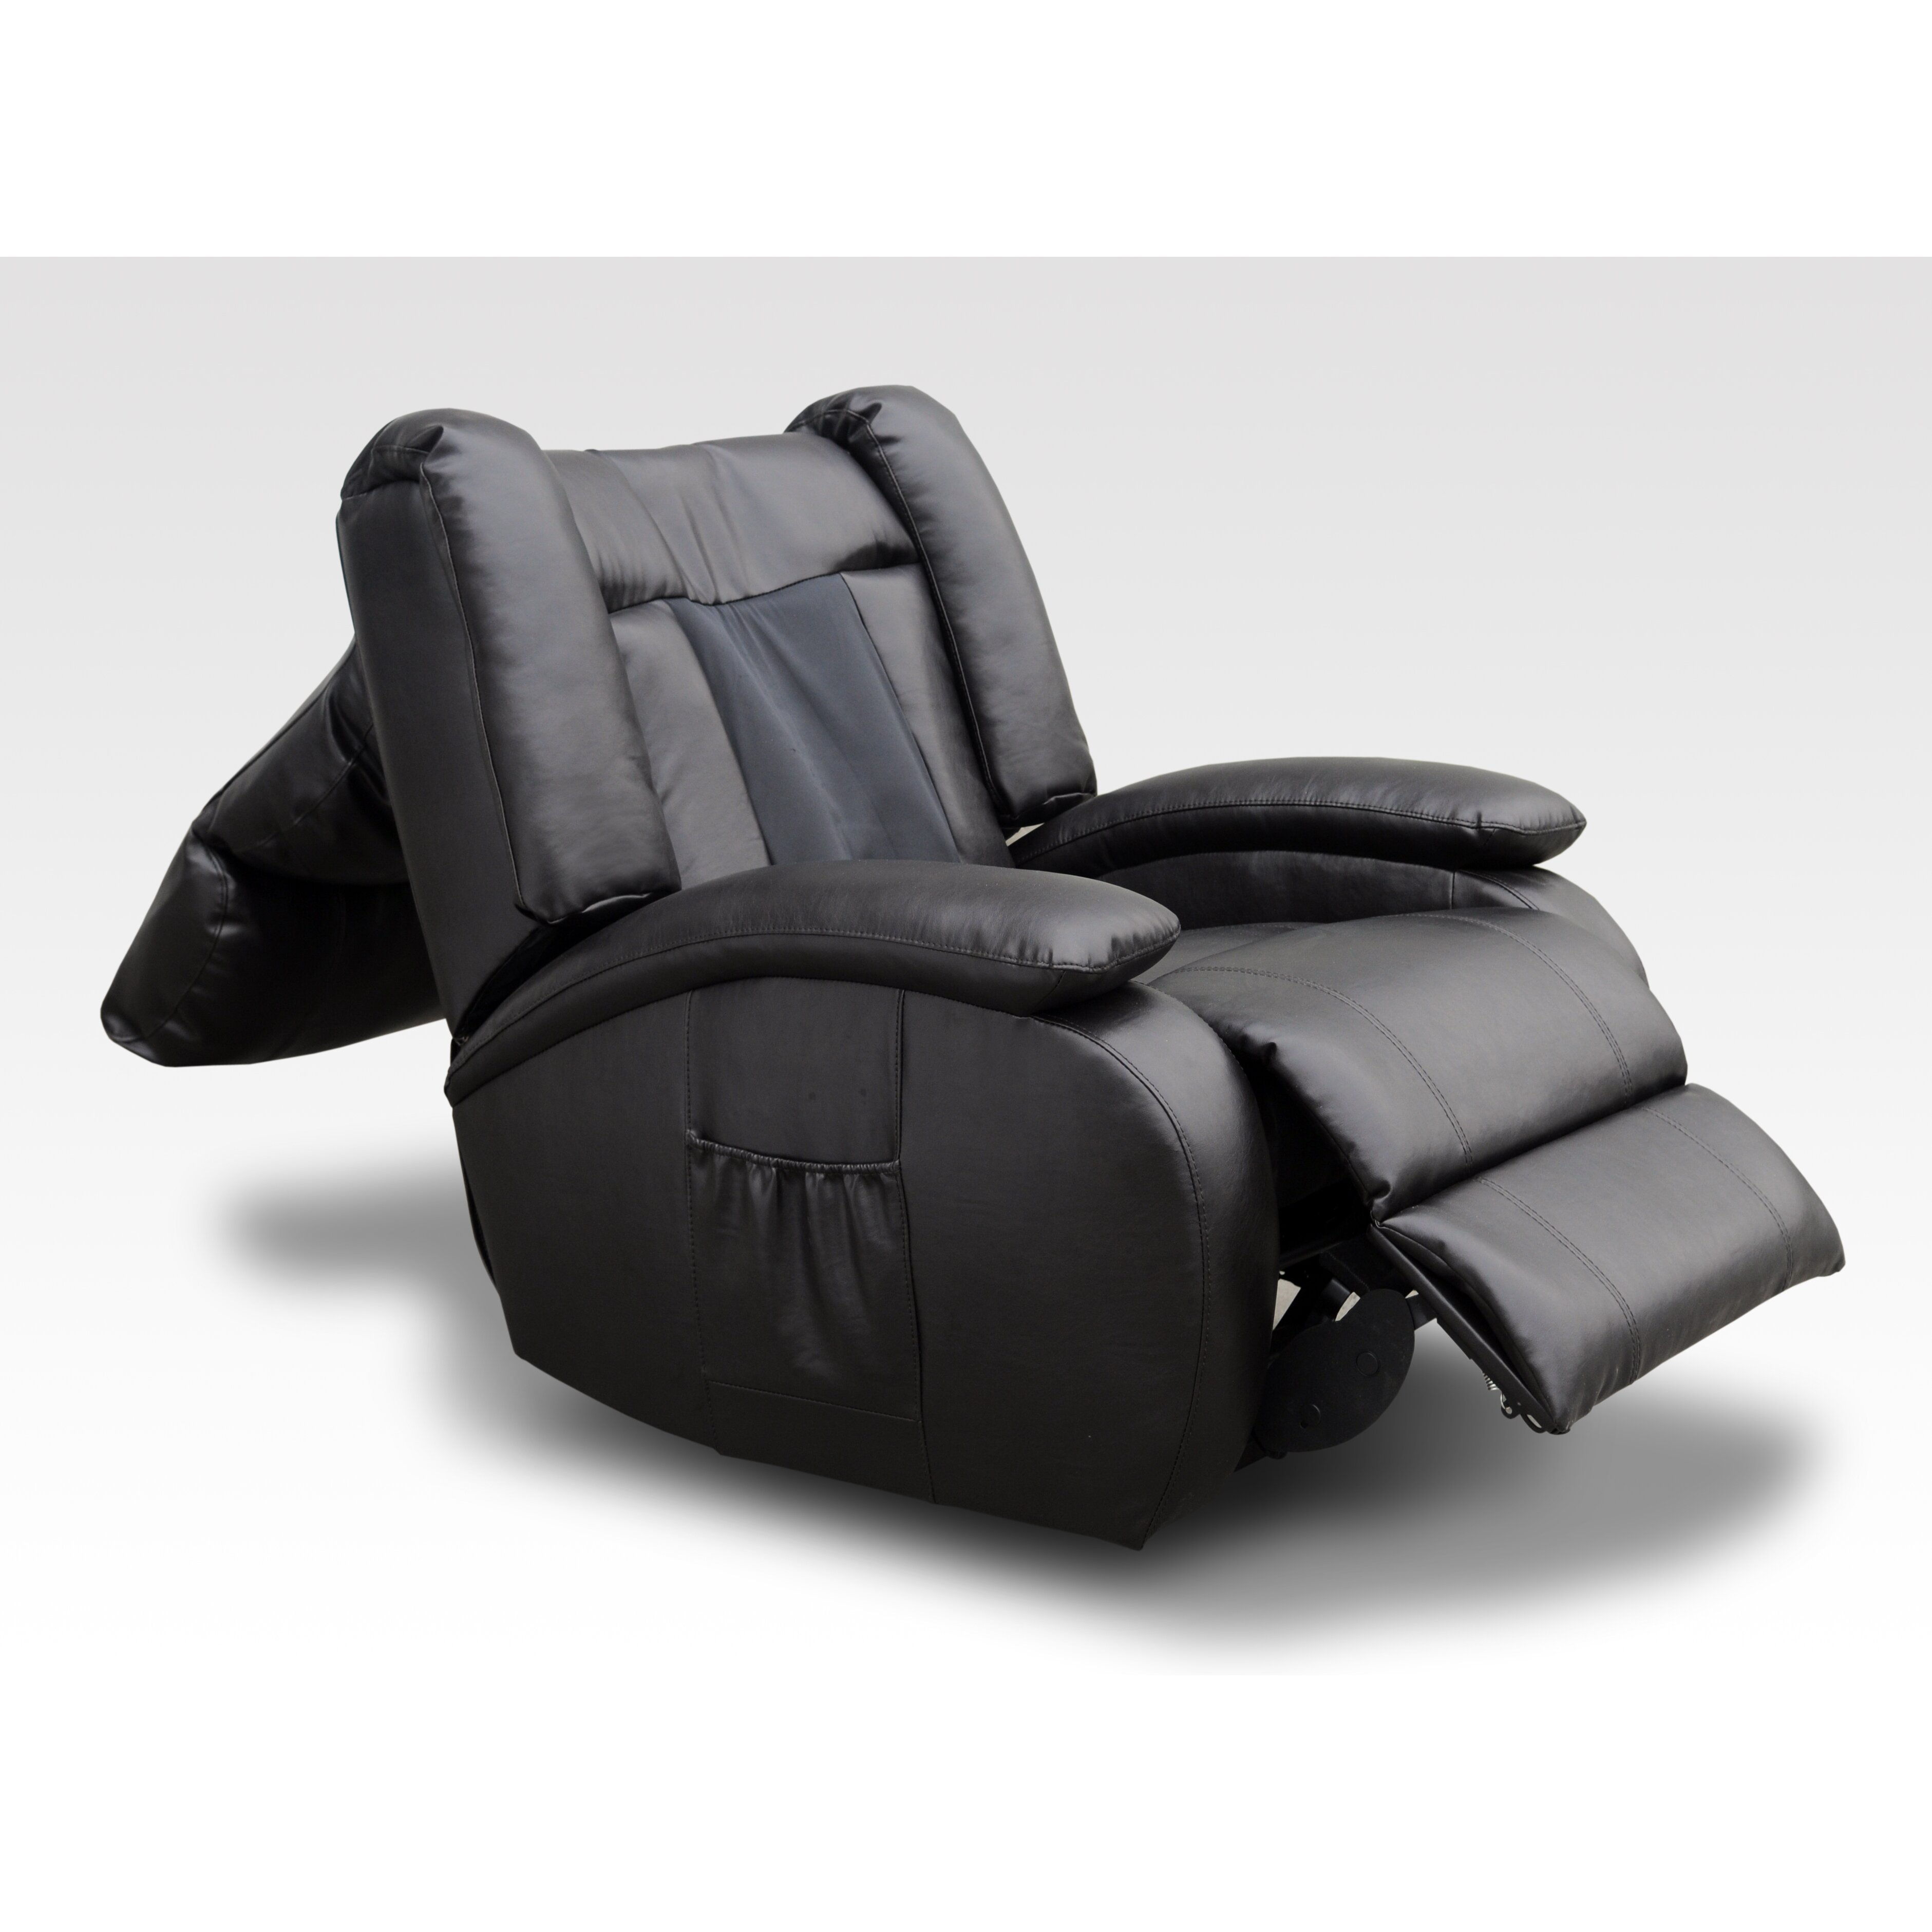 AC Pacific Bonded Leather Reclining Massage Chair Reviews Wayfair